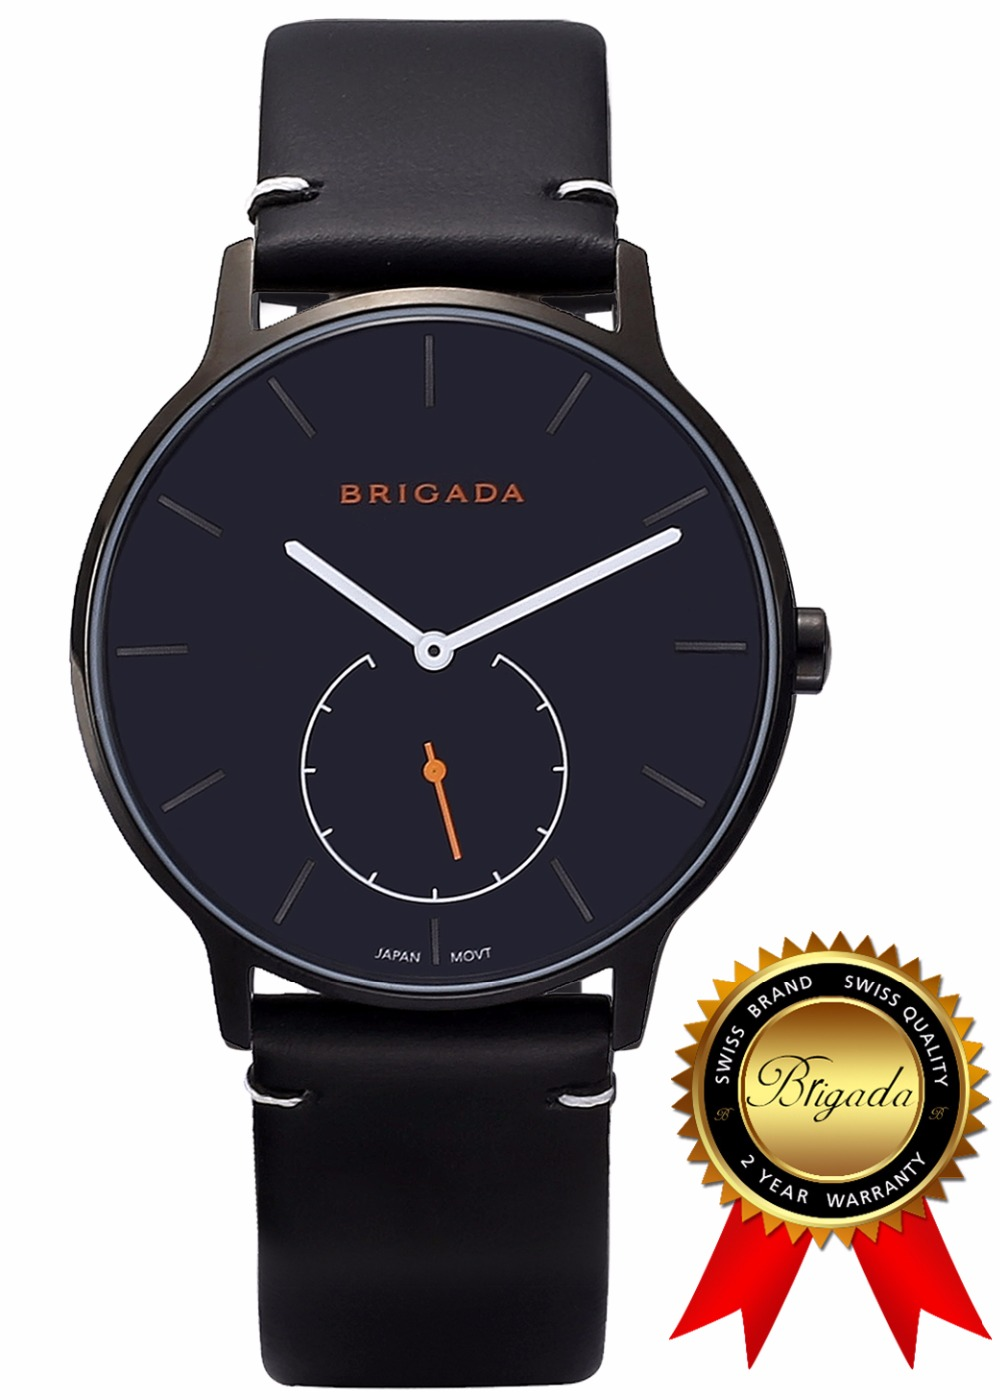 BRIGADA Cool Black Swiss Watches for Men, Nice Fashion Leather Band Quartz Men's Watch, Great Gift for Someone or Yourself fashion cool punk rock design men quartz wooden watch modern black genuine leather watchband unique wood watches gift for male